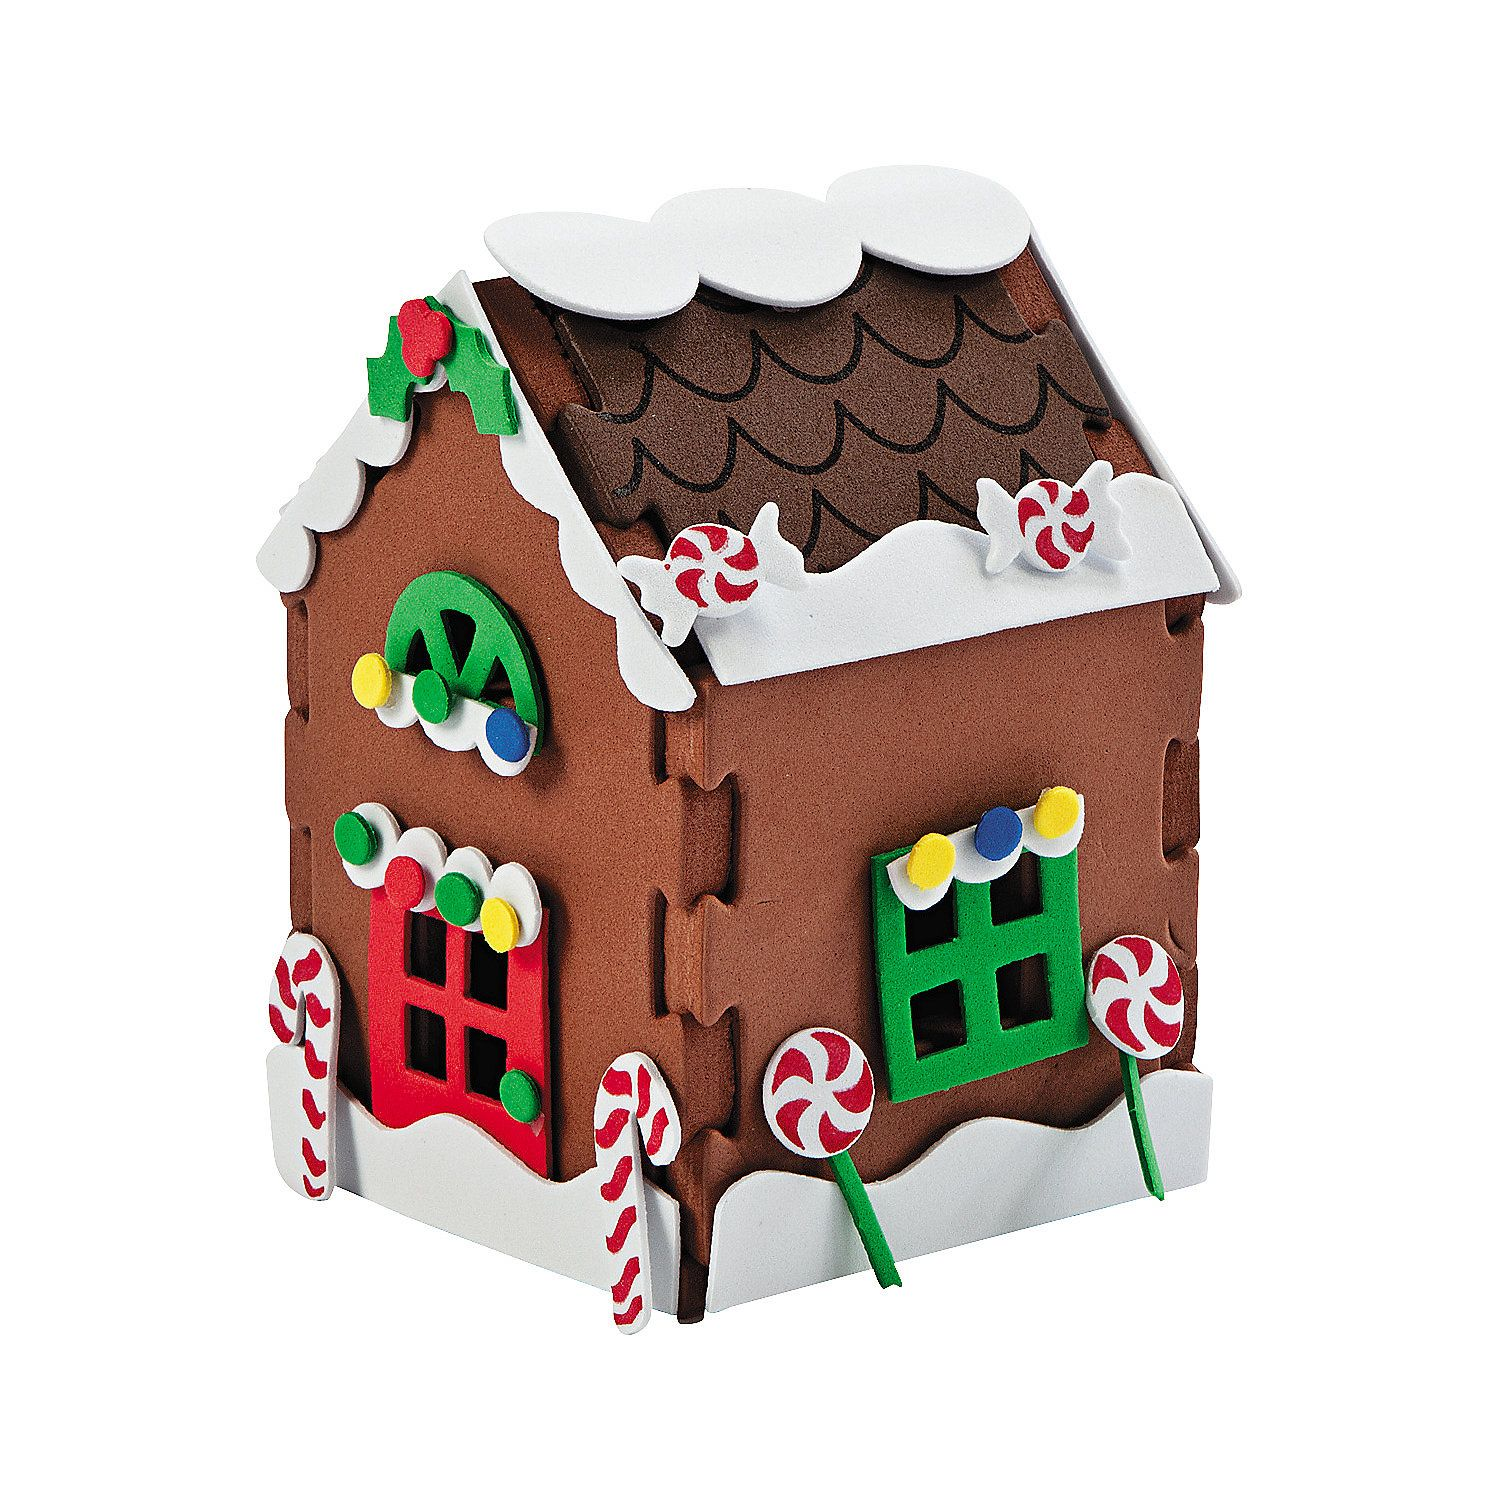 TOP 10 CHRISTMAS CRAFT!! Construct Your Own 3D Gingerbread